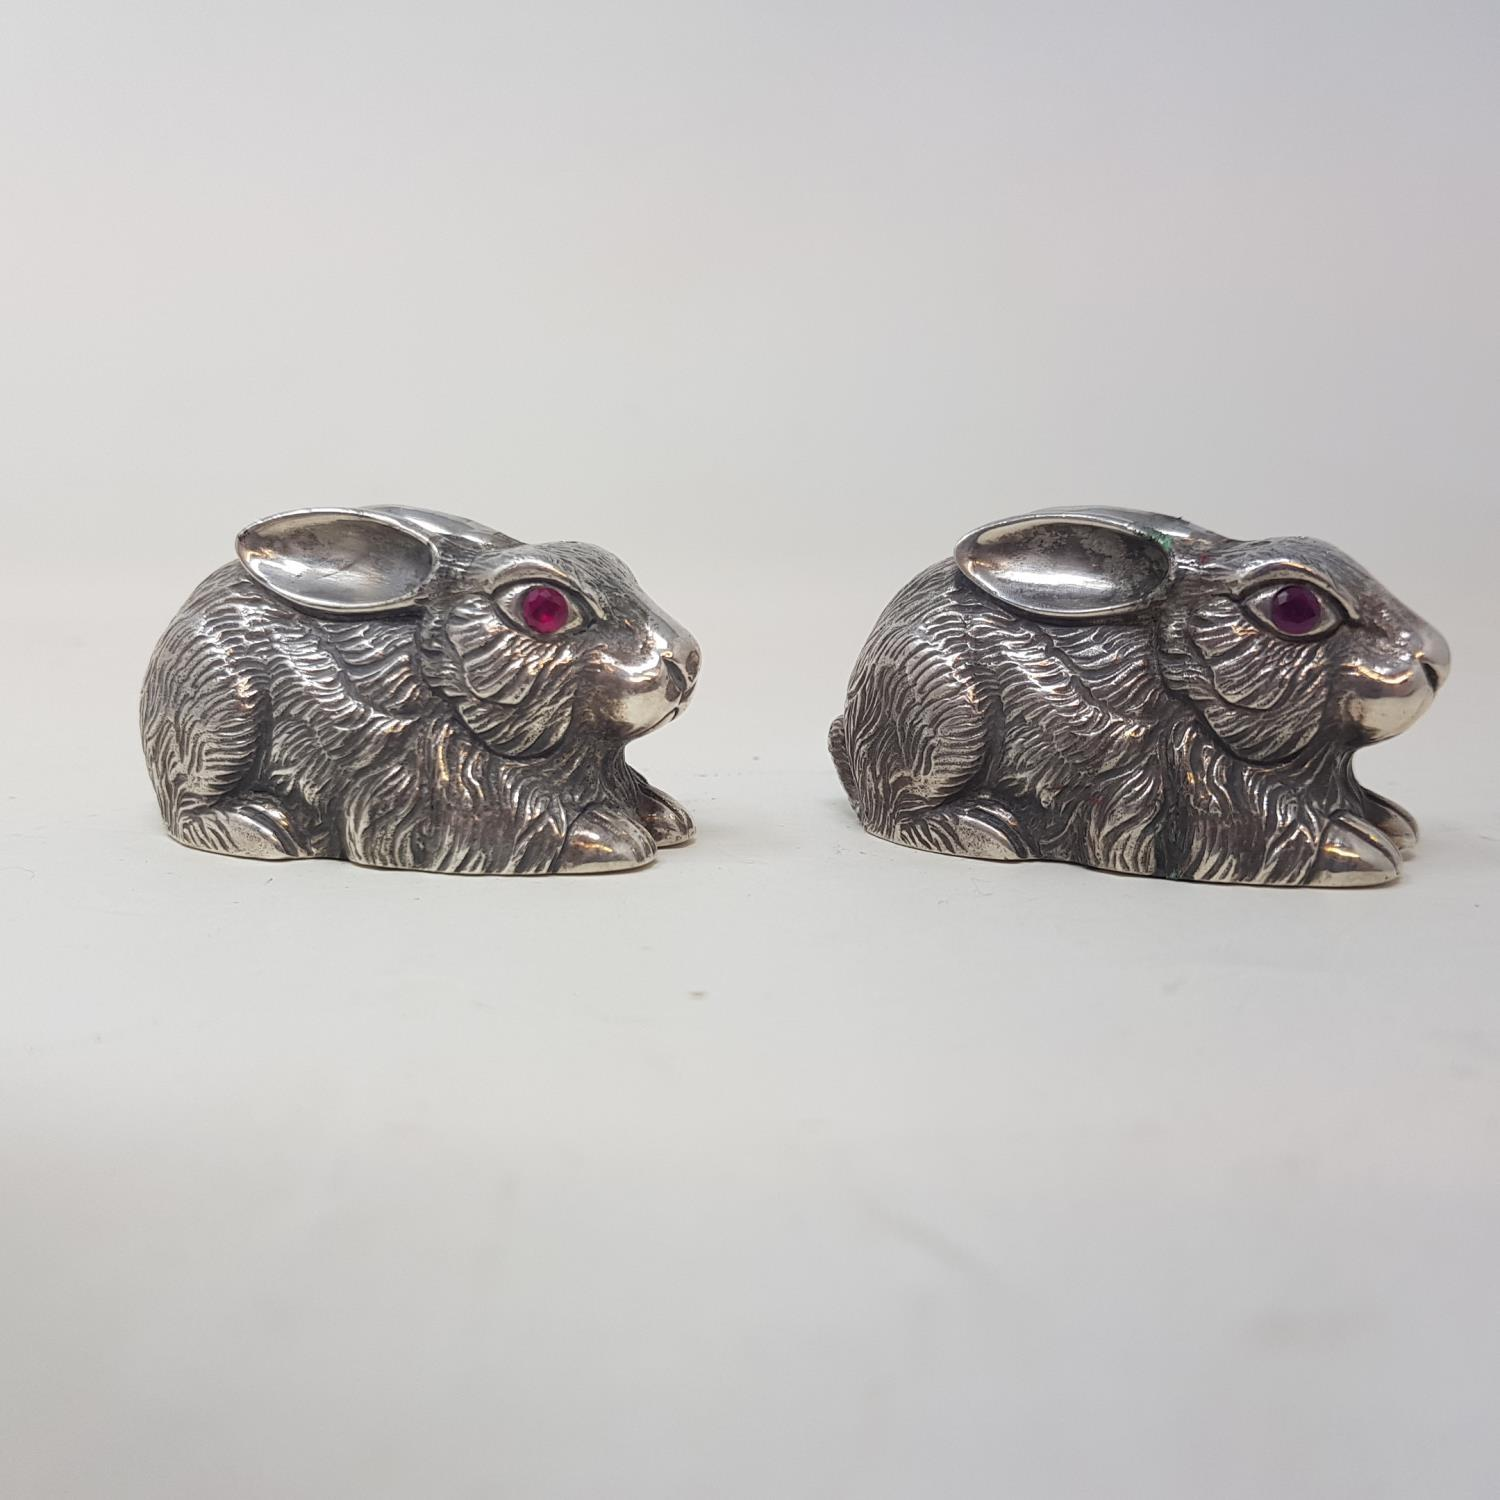 A pair of novelty silver condiments, in the form of rabbits - Image 2 of 2